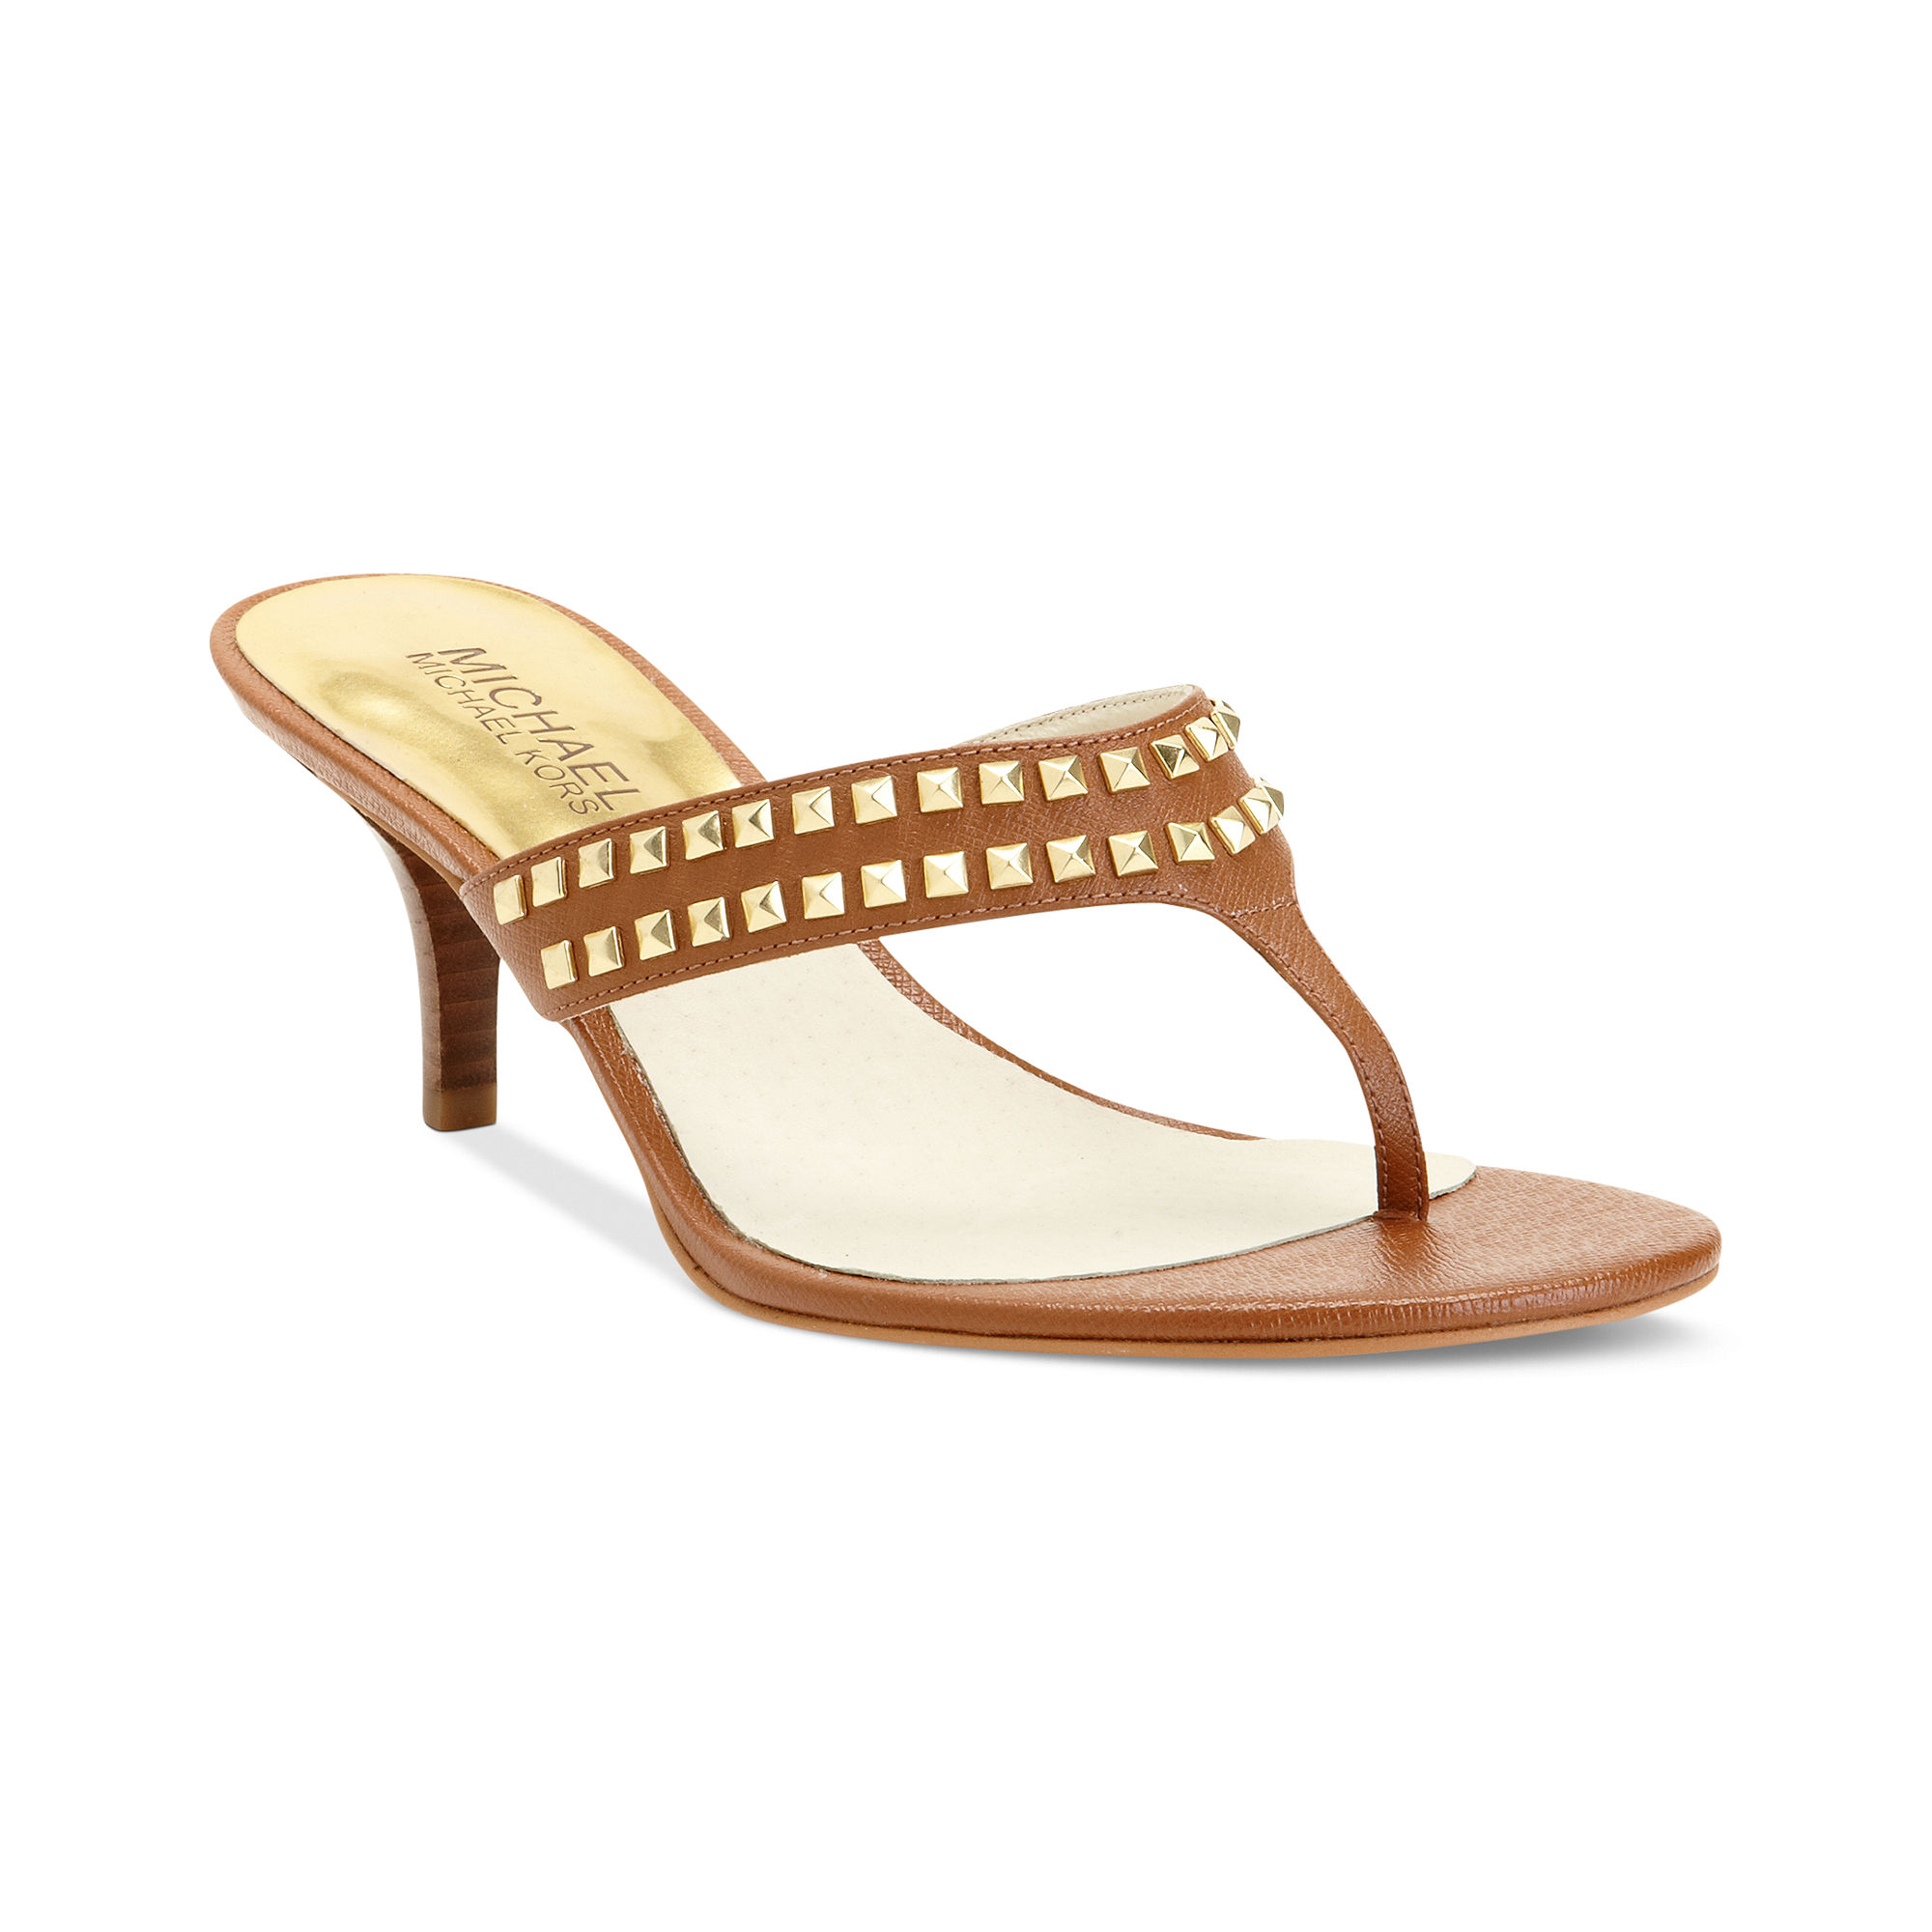 acb58cabbec Gallery. Previously sold at  Macy s · Women s Yellow Heels ...